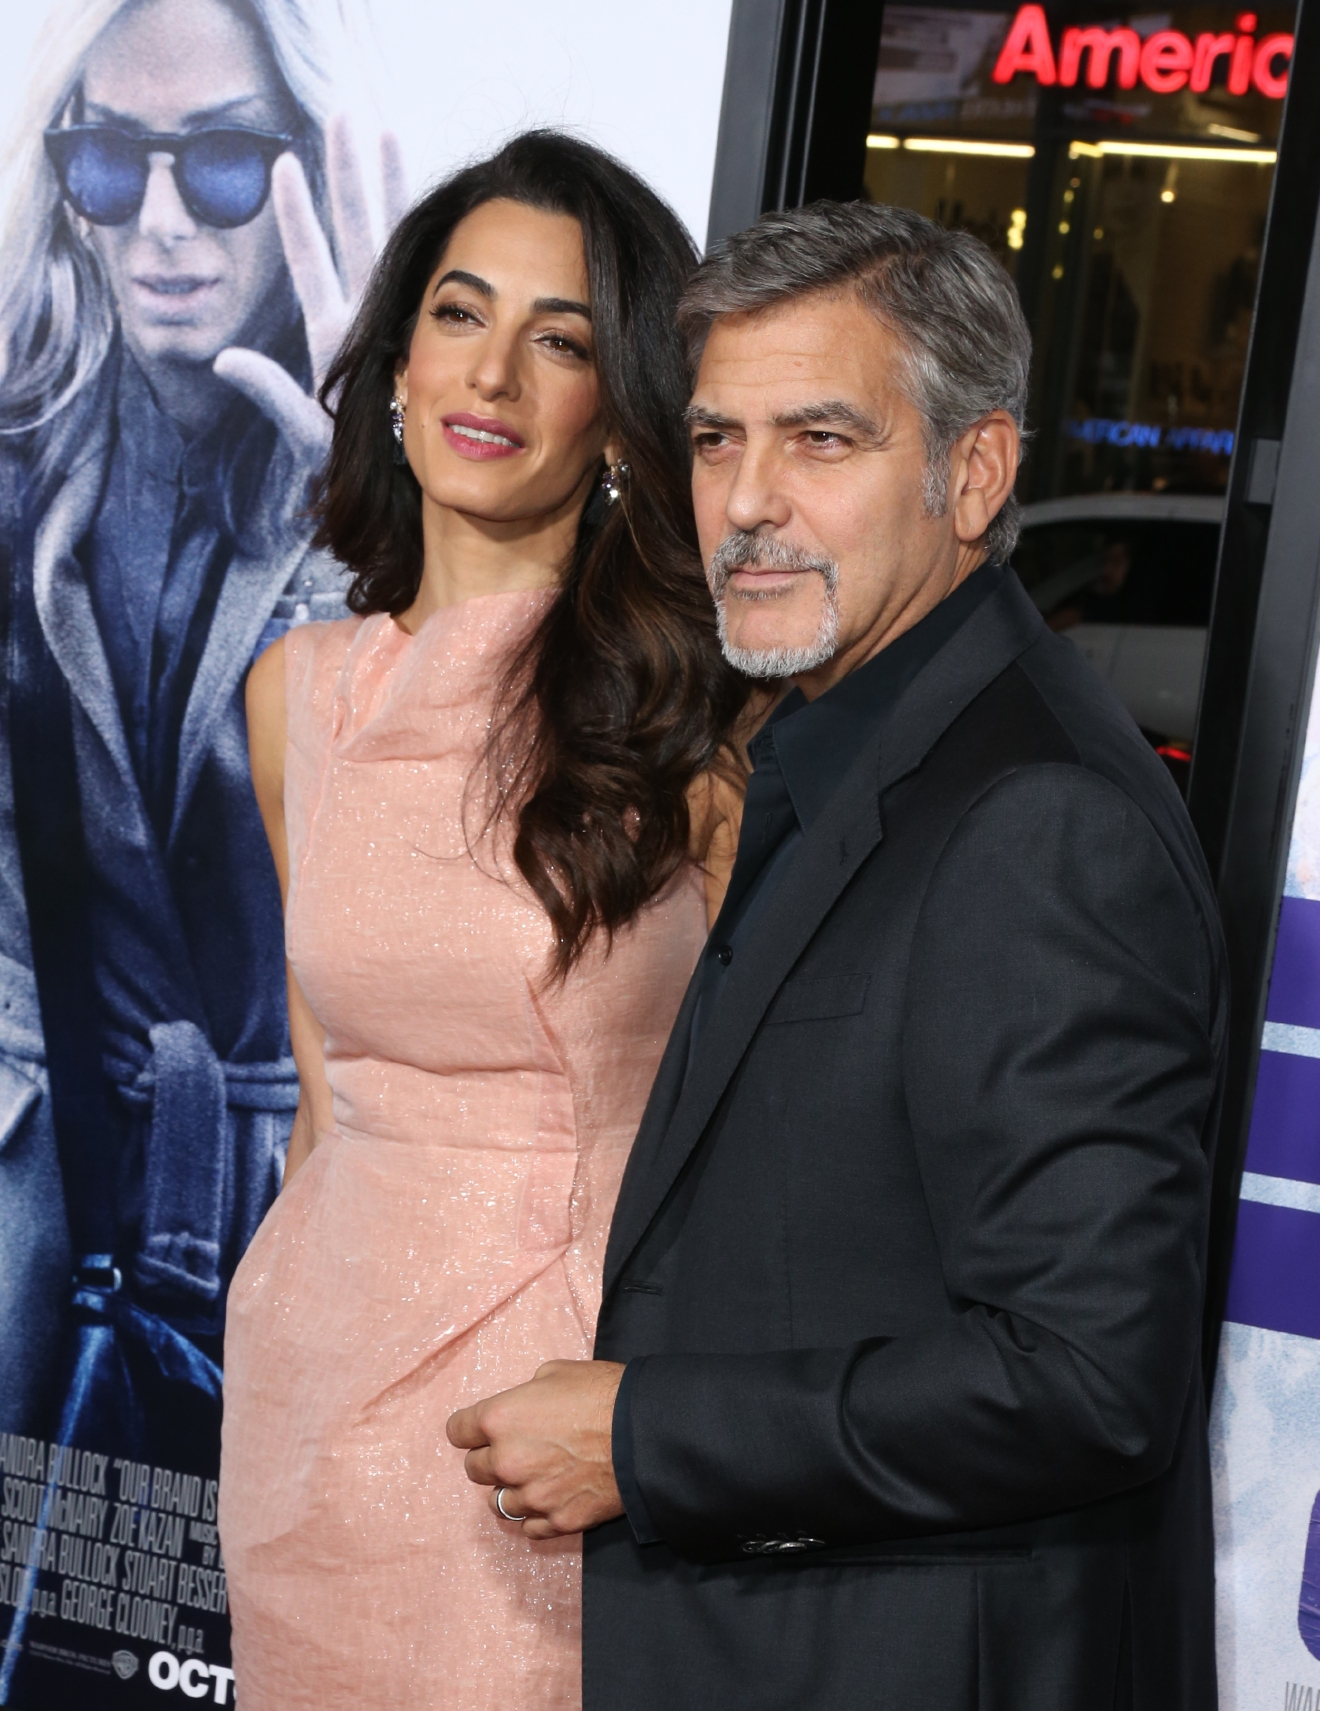 "Premiere Of Warner Bros. Pictures' ""Our Brand Is Crisis""                                    Featuring: Amal Alamuddin, George Clooney                  Where: Hollywood, California, United States                  When: 27 Oct 2015                  Credit: FayesVision/WENN.com"